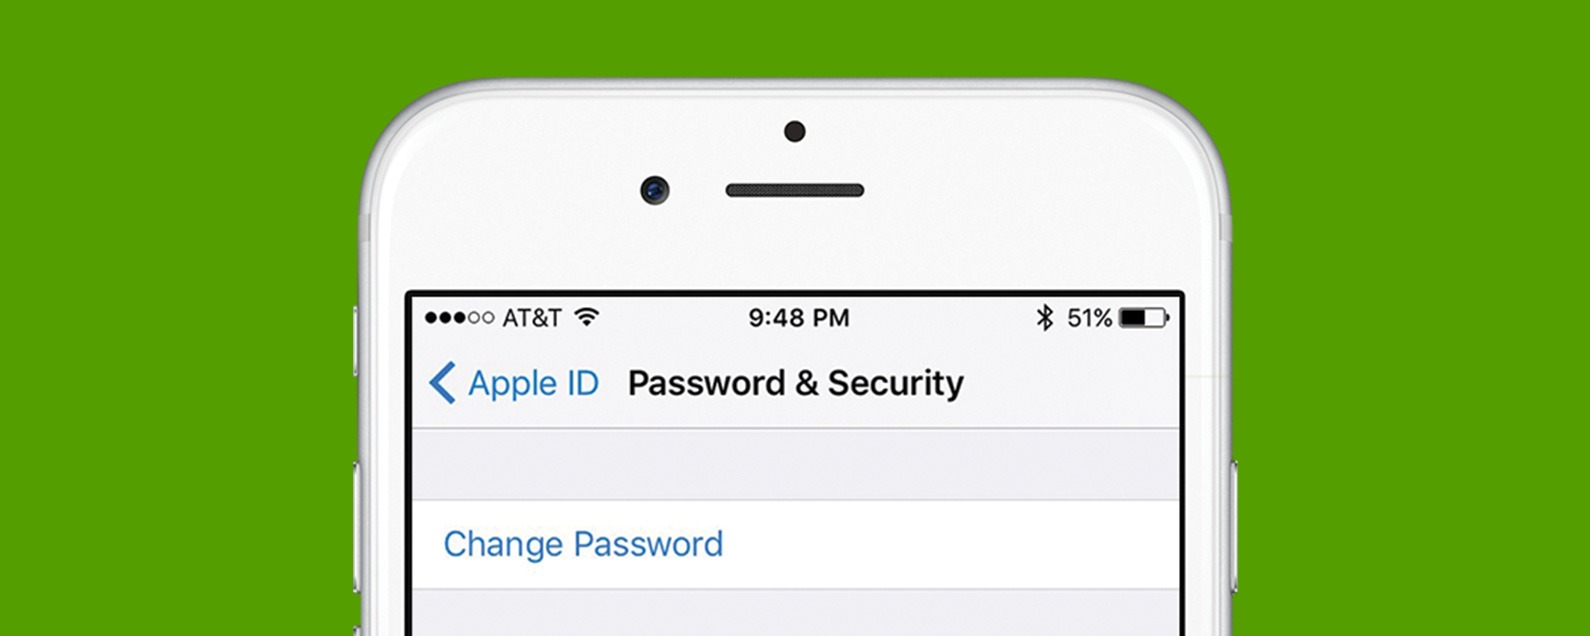 How to Change Your Apple ID Password on iPhone | iPhoneLife com